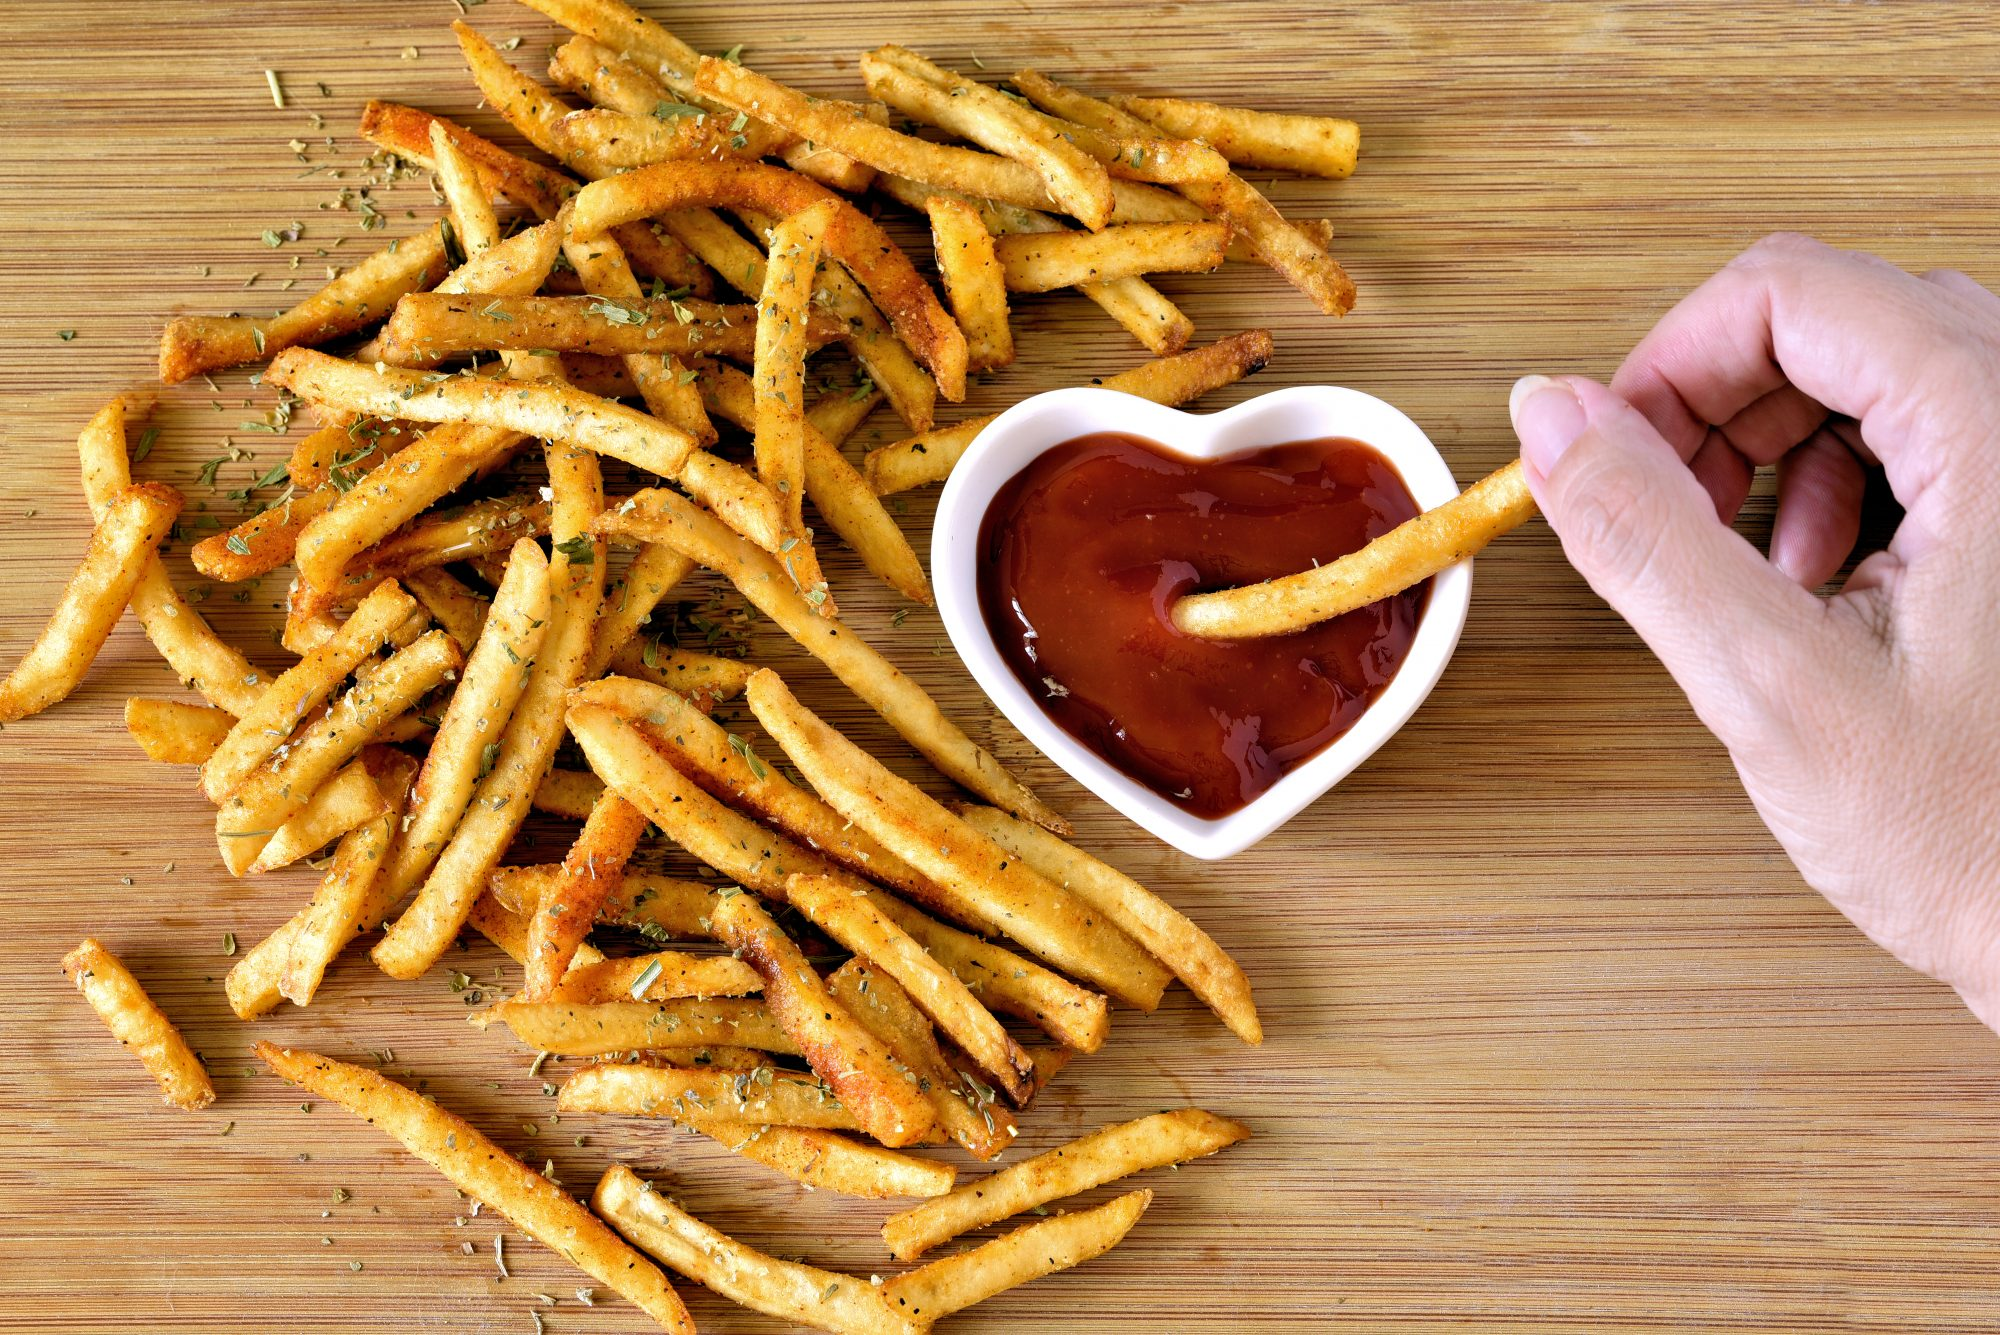 French fries with ketchup Getty 6/24/20